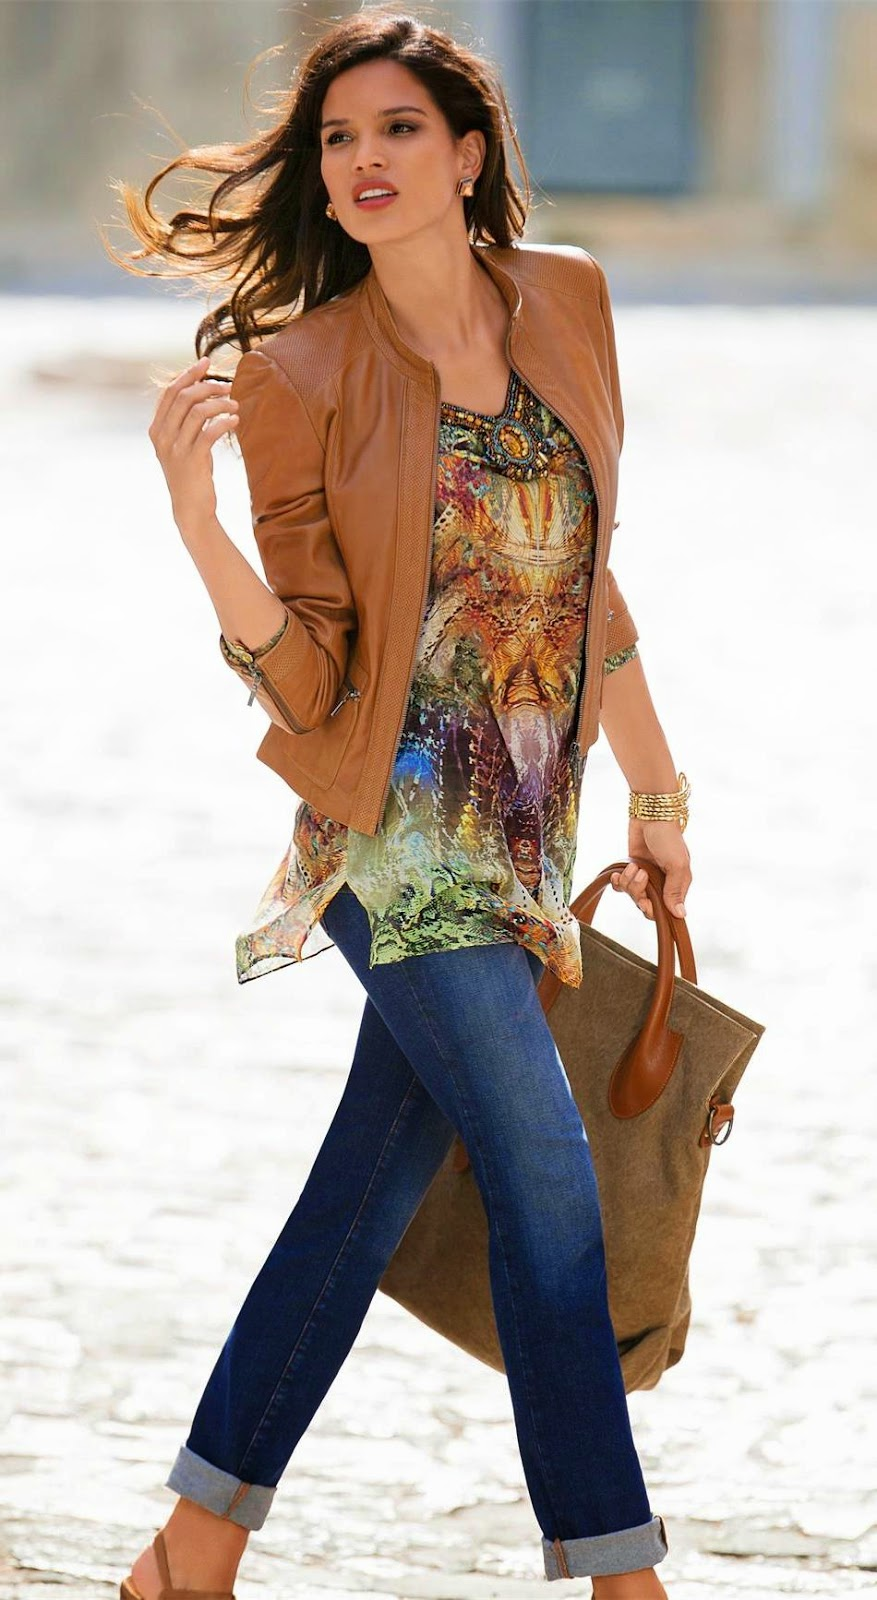 Madeleine Cognac Leather Jacket